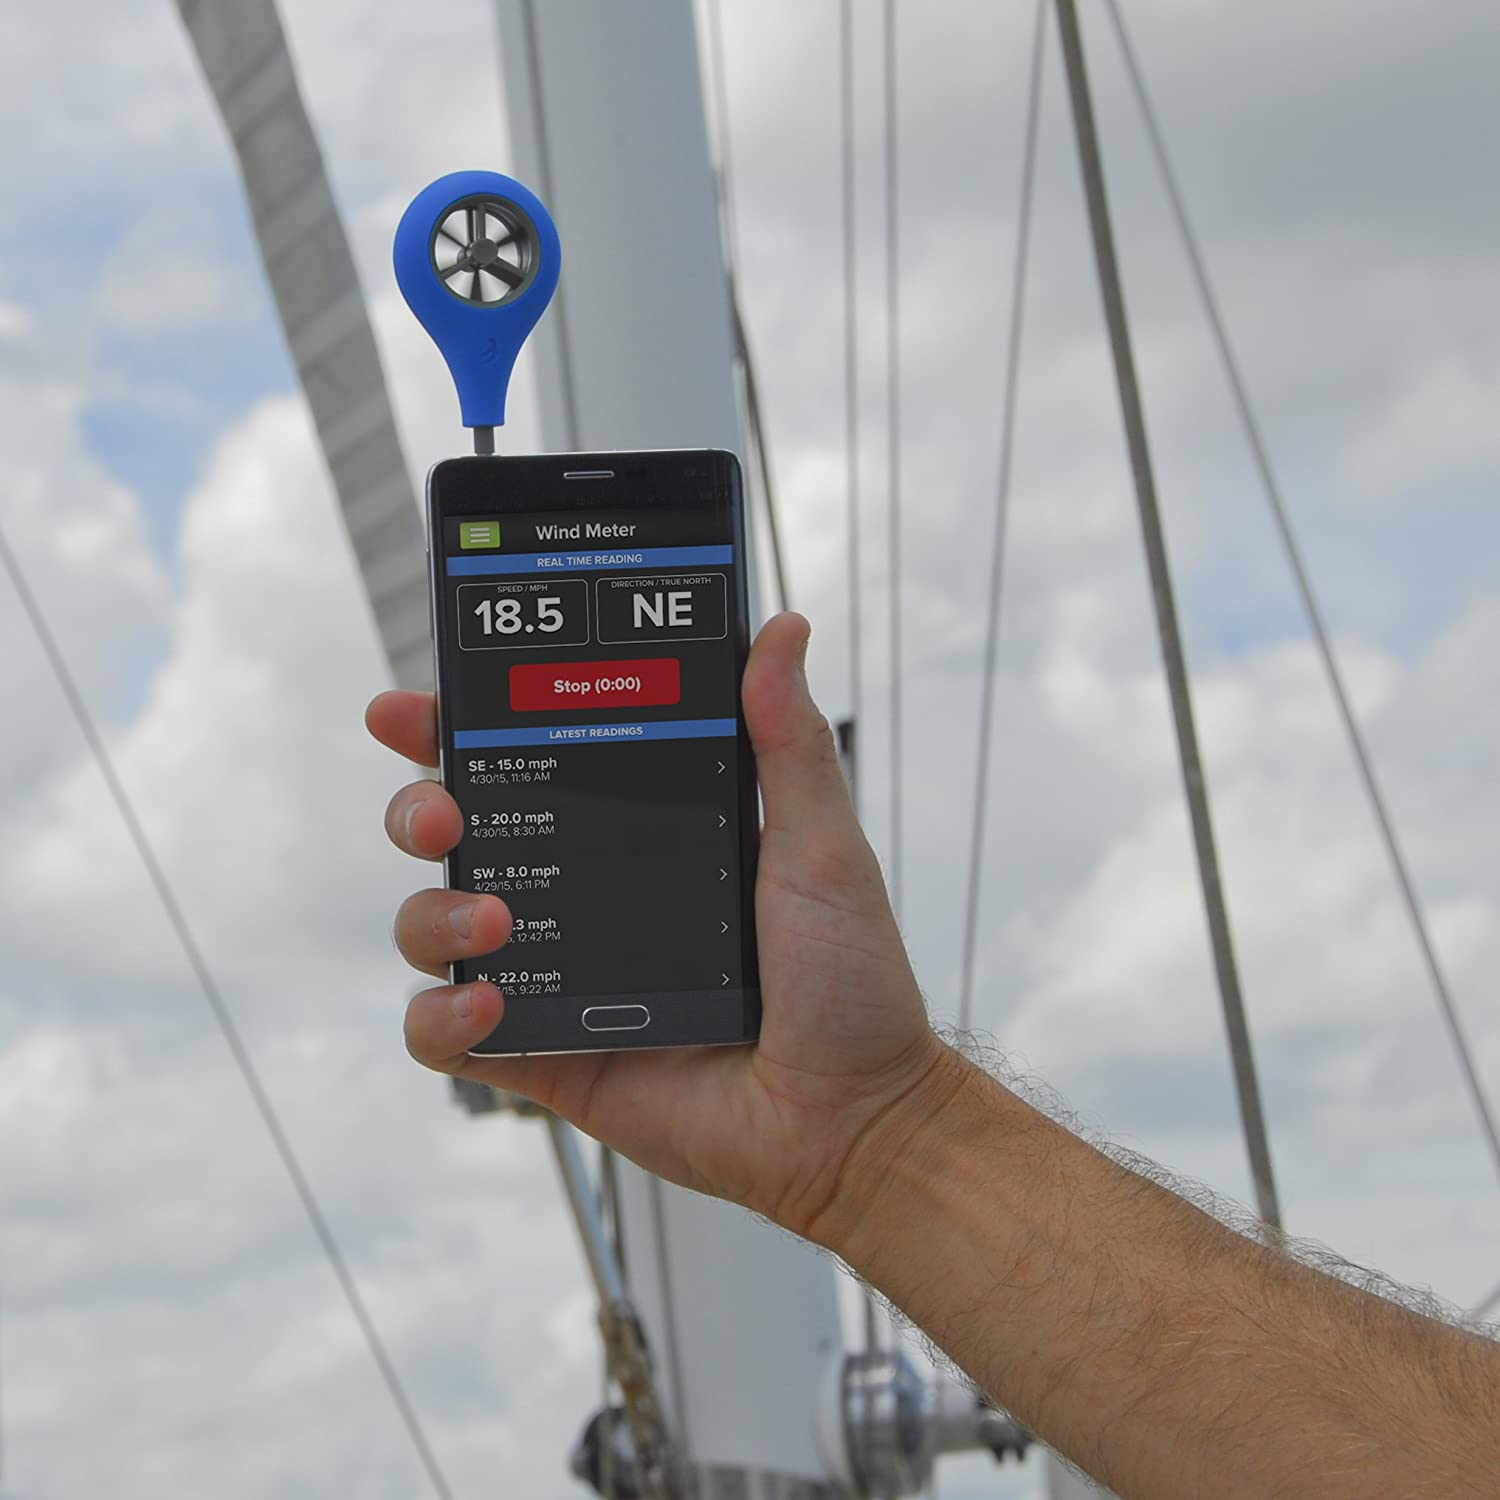 WeatherFlow Wind Meter review